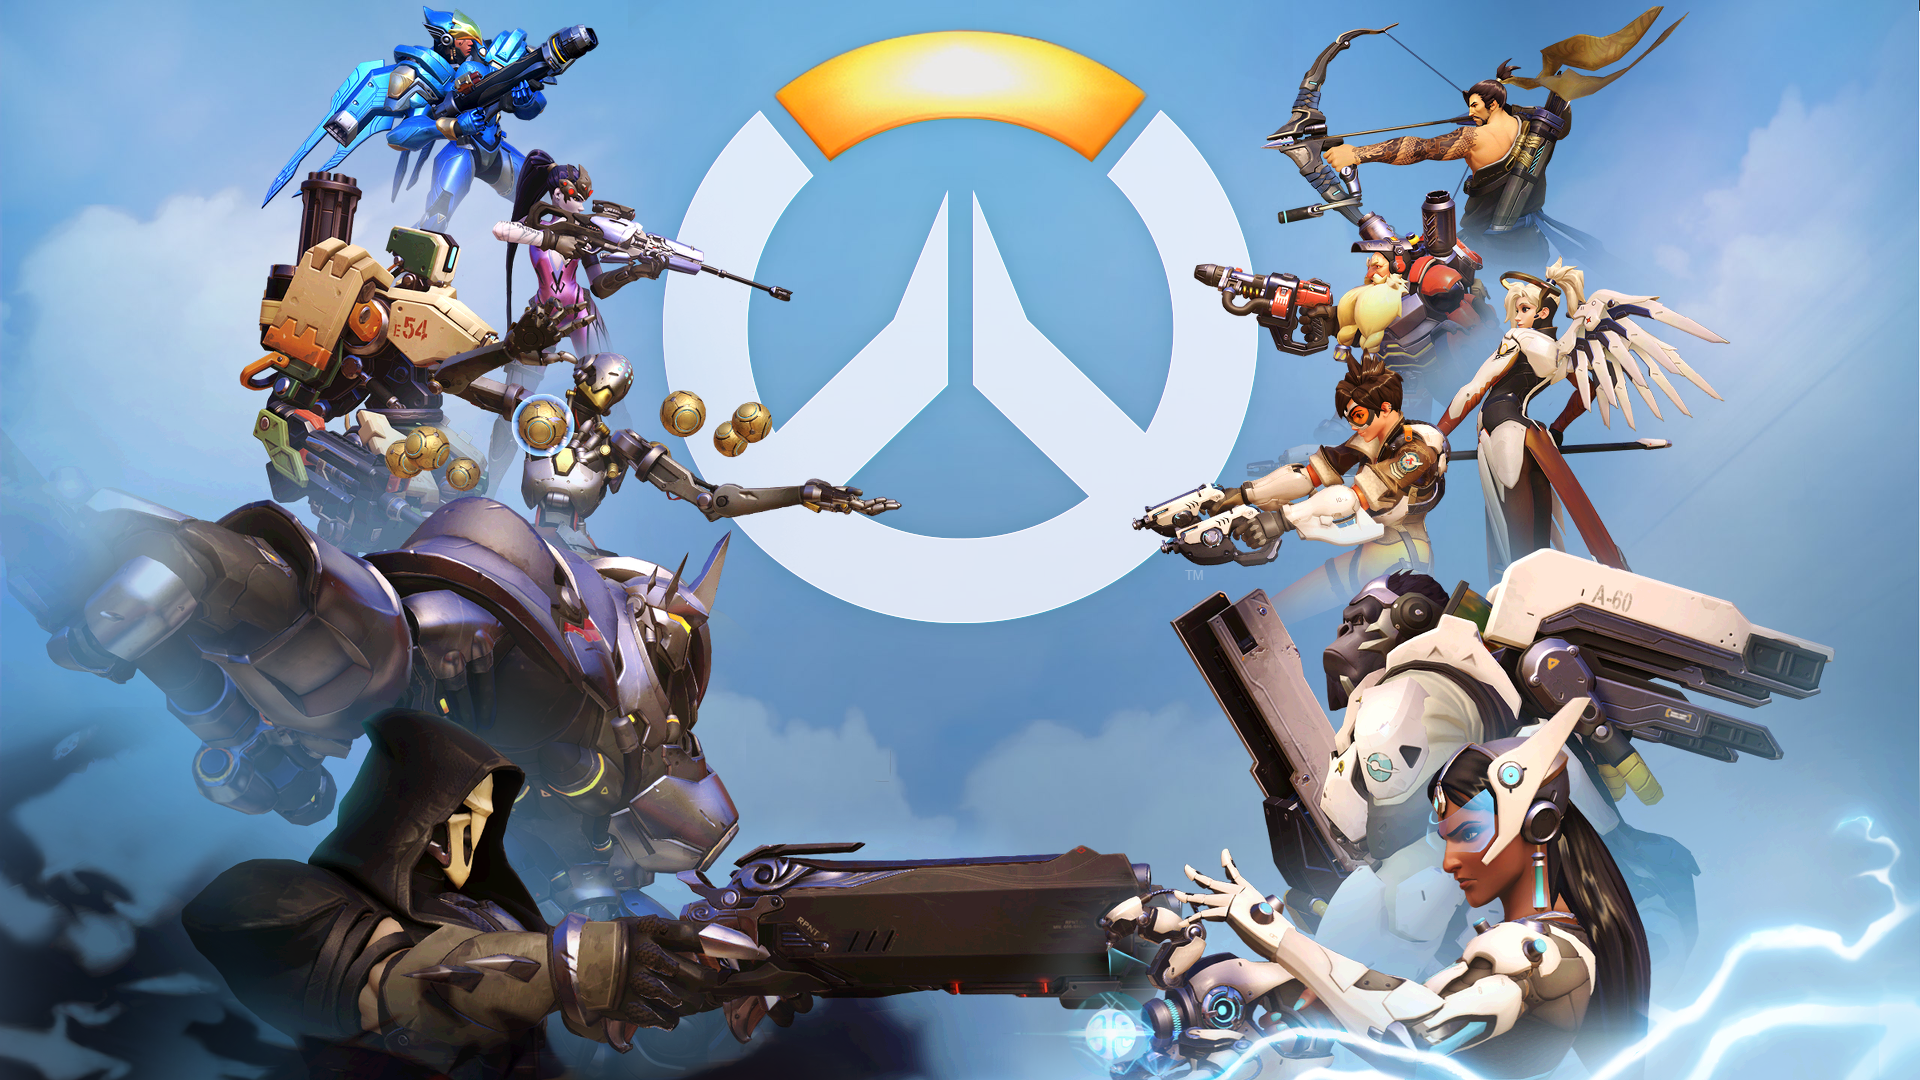 Overwatch (May 24th)